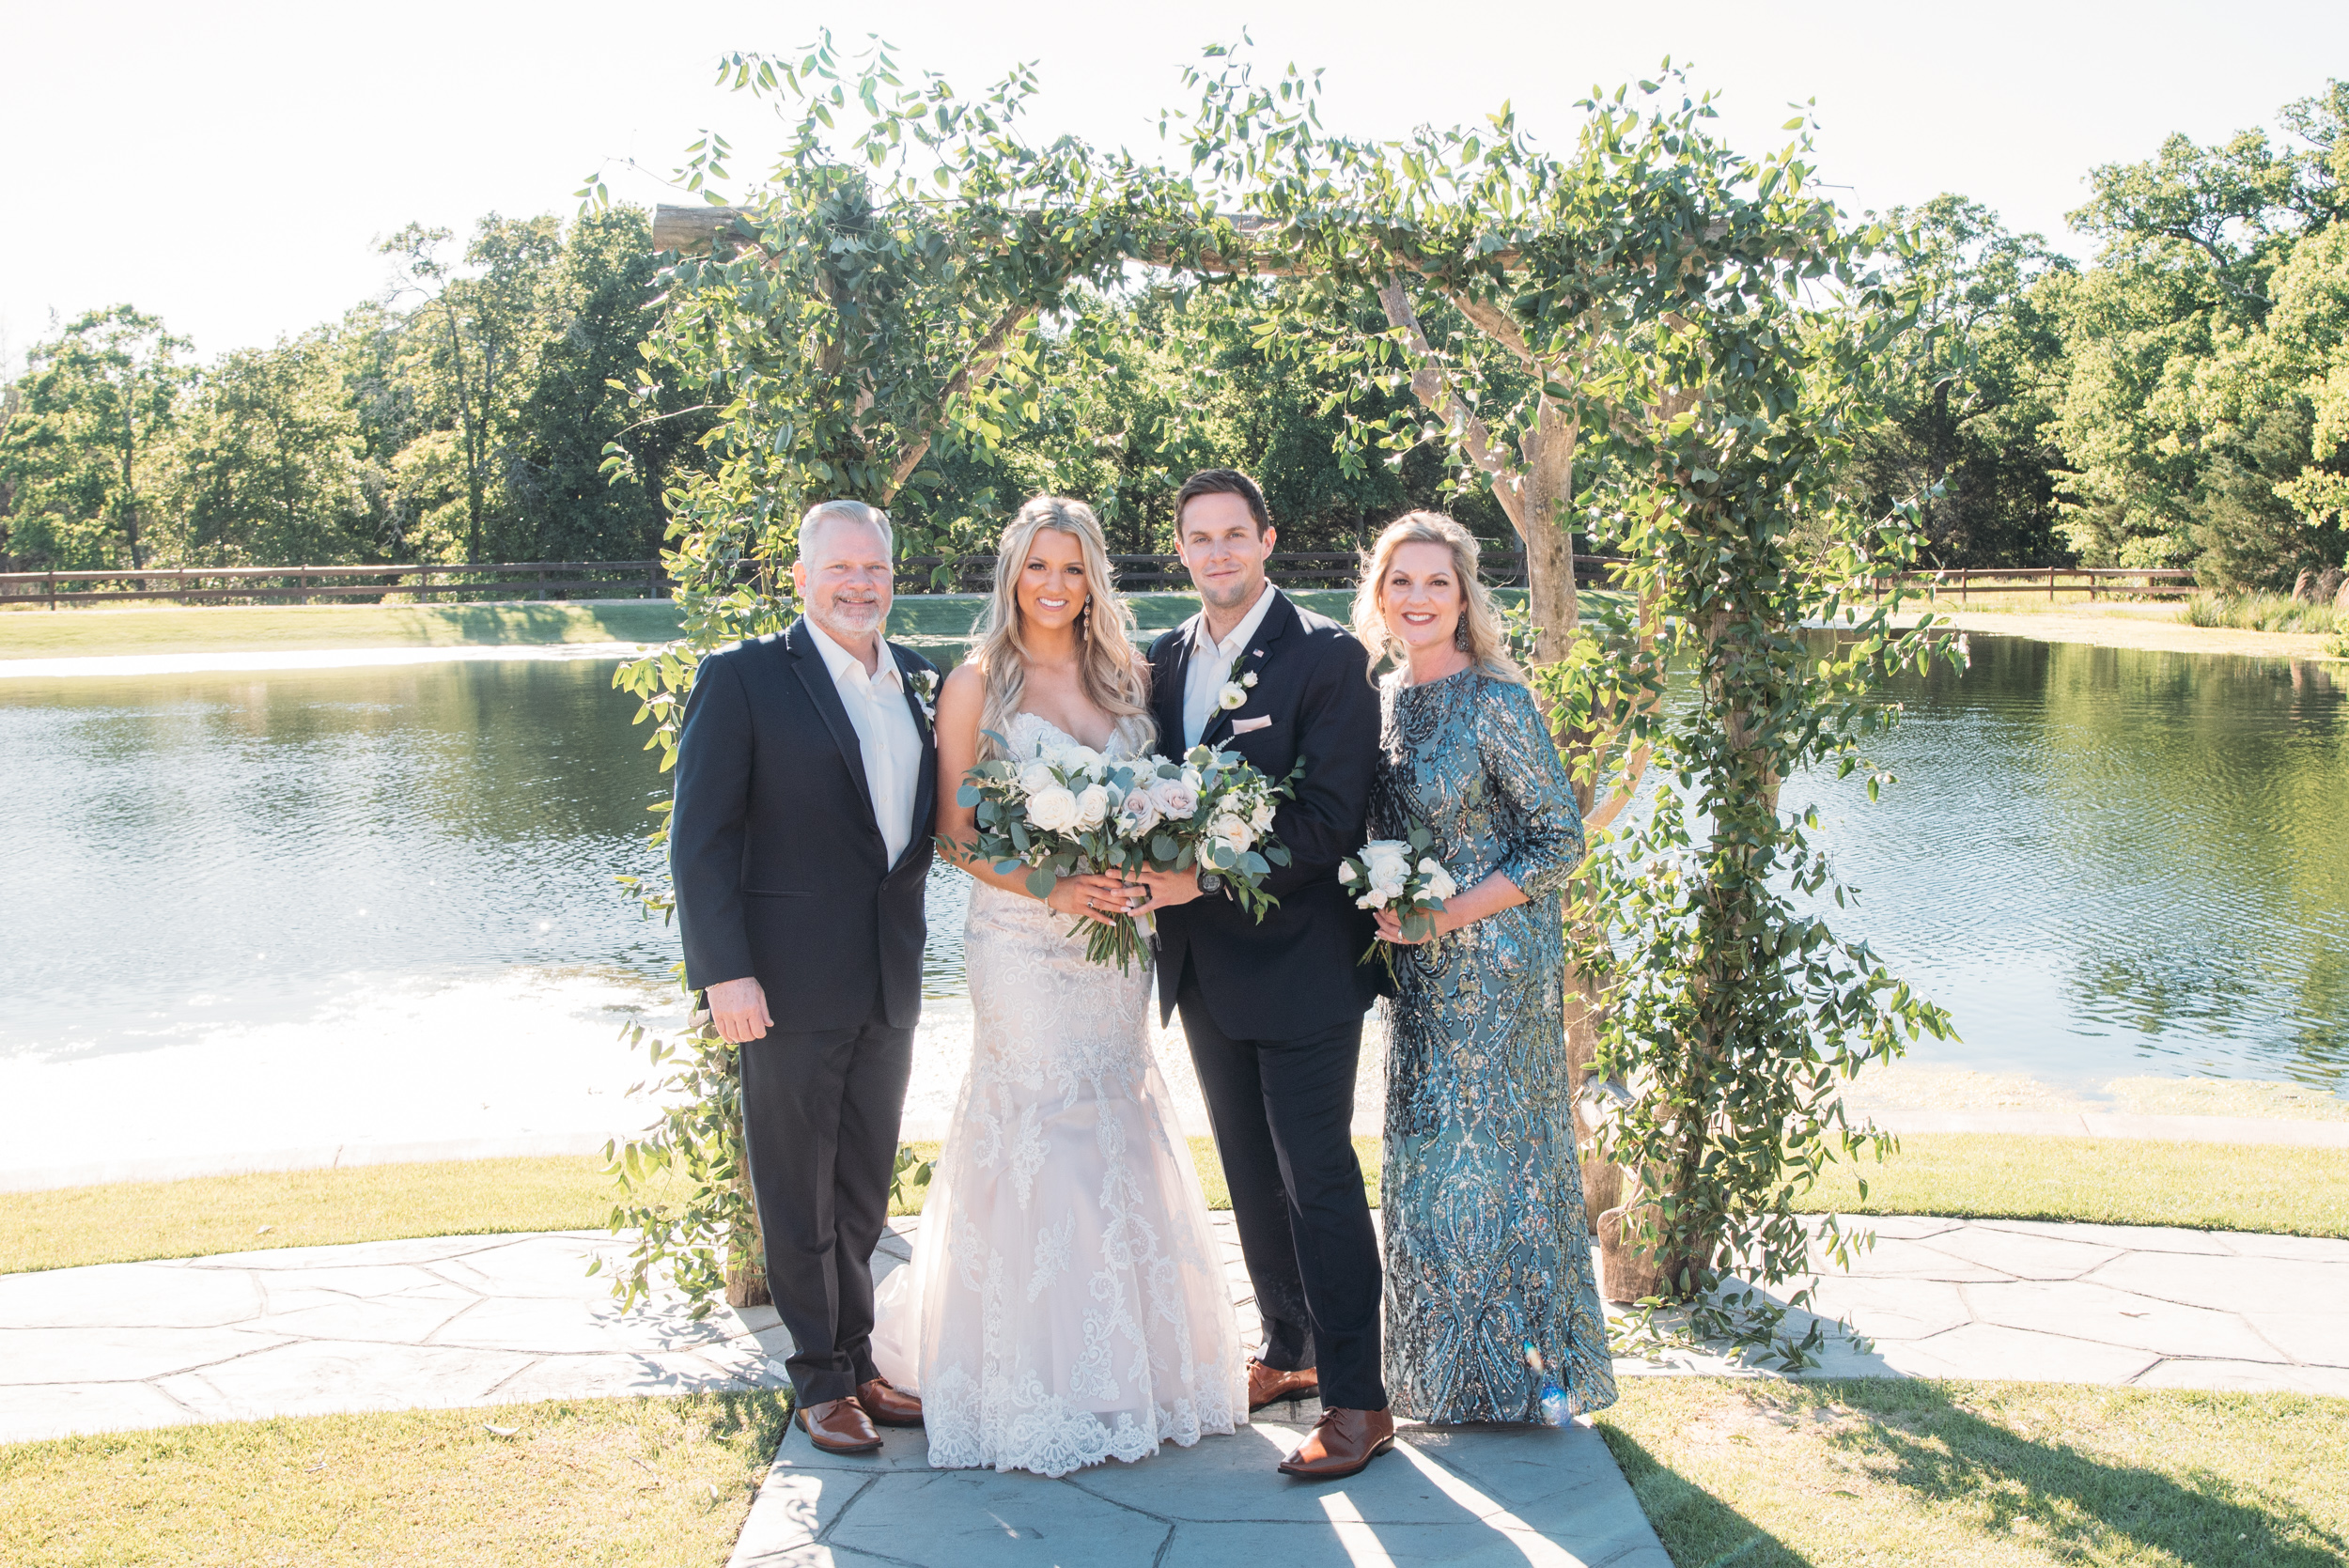 CollegeStation_WeddingPhotographer_PeachCreekRanch_039.jpg